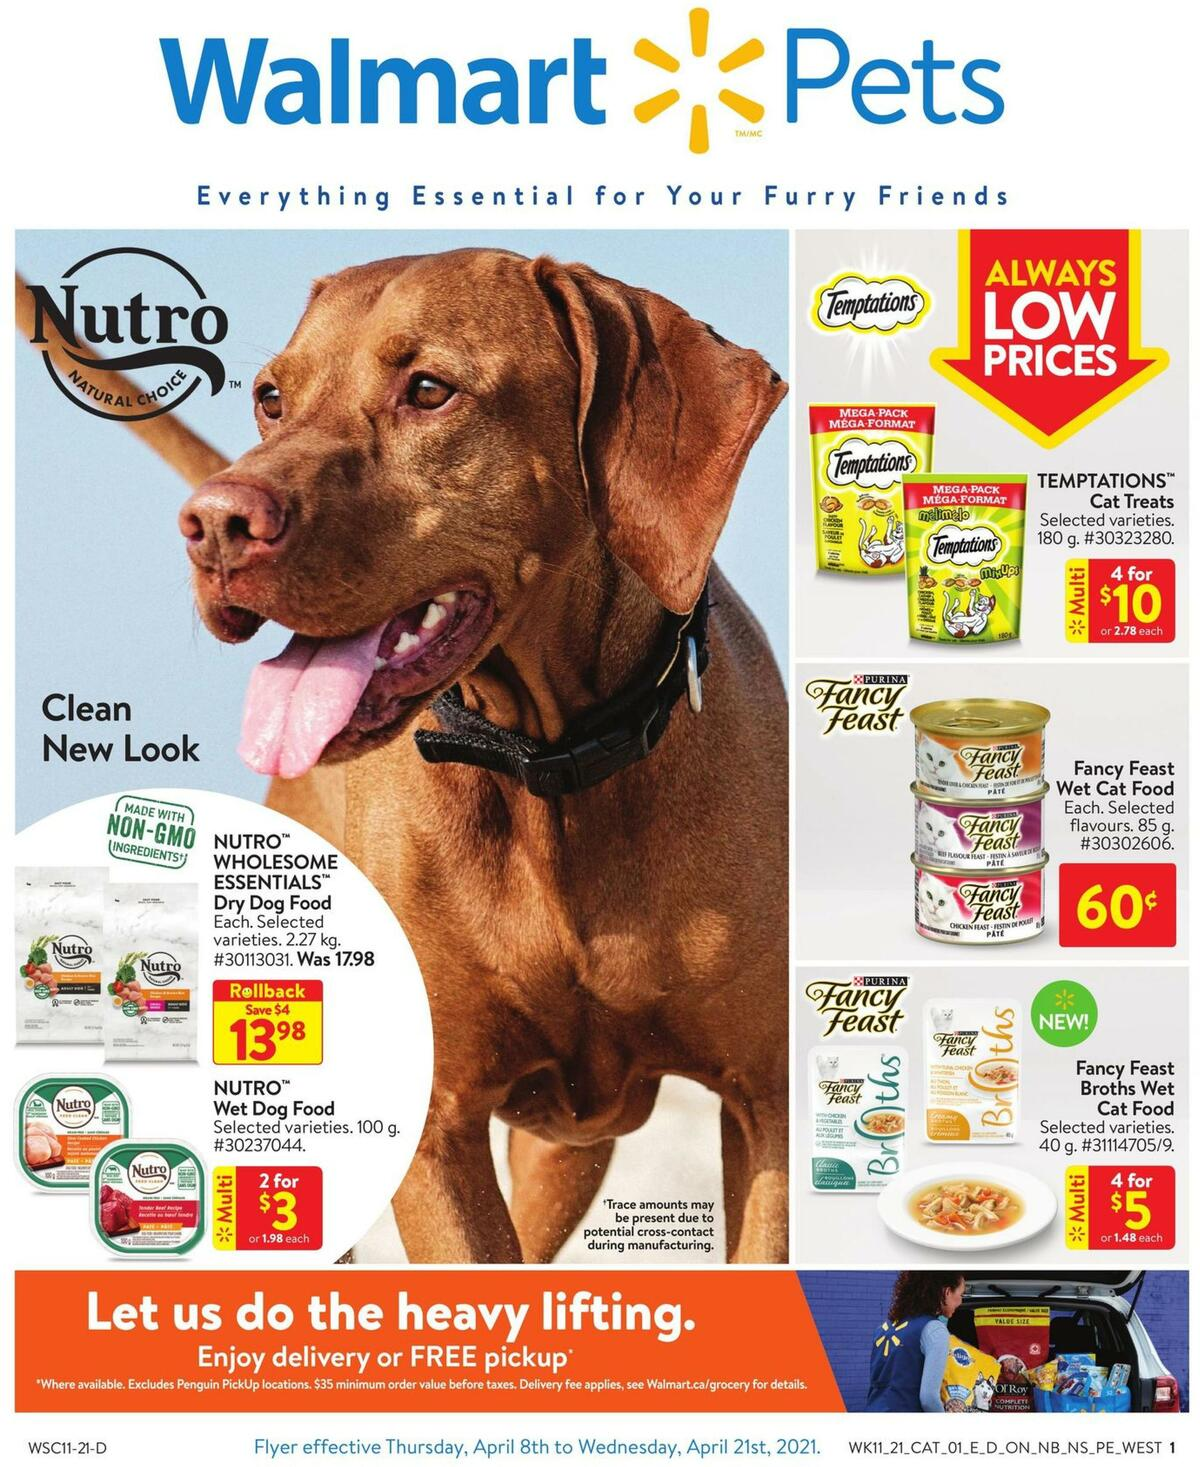 Walmart Pets Flyer from April 8